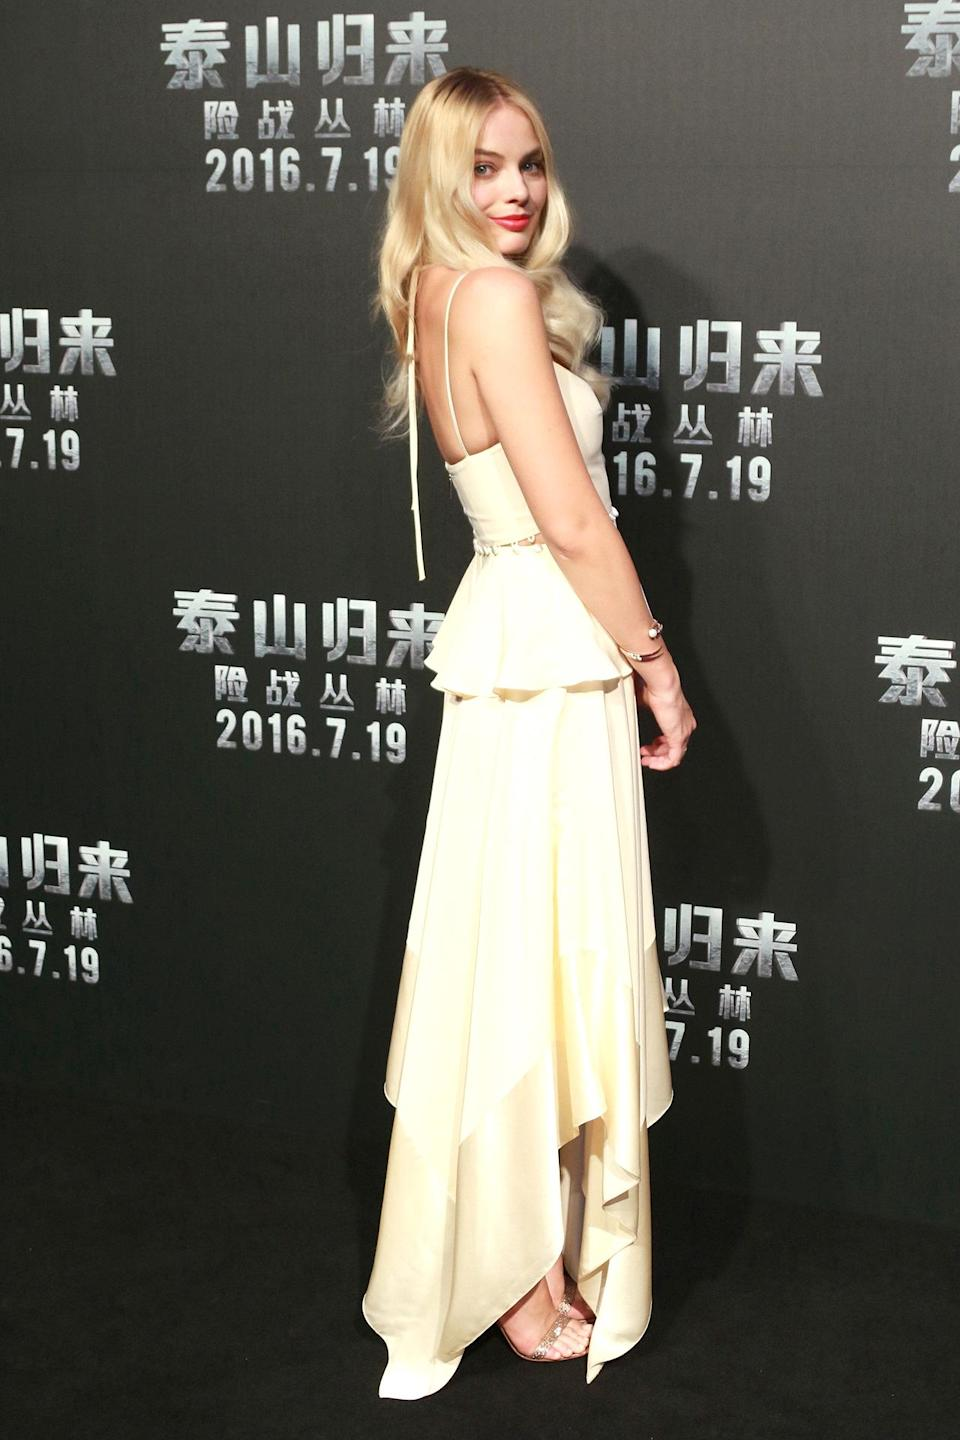 """<h2>In Prabal Gurung</h2> <p>At the<em> Legend of Tarzan</em> premiere in Beijing, 2016</p> <h4>Getty Images</h4> <p> <strong>Related Articles</strong> <ul> <li><a rel=""""nofollow noopener"""" href=""""http://thezoereport.com/fashion/style-tips/box-of-style-ways-to-wear-cape-trend/?utm_source=yahoo&utm_medium=syndication"""" target=""""_blank"""" data-ylk=""""slk:The Key Styling Piece Your Wardrobe Needs"""" class=""""link rapid-noclick-resp"""">The Key Styling Piece Your Wardrobe Needs</a></li><li><a rel=""""nofollow noopener"""" href=""""http://thezoereport.com/fashion/shopping/everything-need-let-zoe-giveaway/?utm_source=yahoo&utm_medium=syndication"""" target=""""_blank"""" data-ylk=""""slk:Everything You Need From Our Let It Zoe Giveaway"""" class=""""link rapid-noclick-resp"""">Everything You Need From Our Let It Zoe Giveaway</a></li><li><a rel=""""nofollow noopener"""" href=""""http://thezoereport.com/beauty/celebrity-beauty/josephine-skriver-makeup-tutorial-video-vogue/?utm_source=yahoo&utm_medium=syndication"""" target=""""_blank"""" data-ylk=""""slk:A Victoria's Secret Model Shows Us How To Get Our Lips To Her Level"""" class=""""link rapid-noclick-resp"""">A Victoria's Secret Model Shows Us How To Get Our Lips To Her Level</a></li> </ul> </p>"""